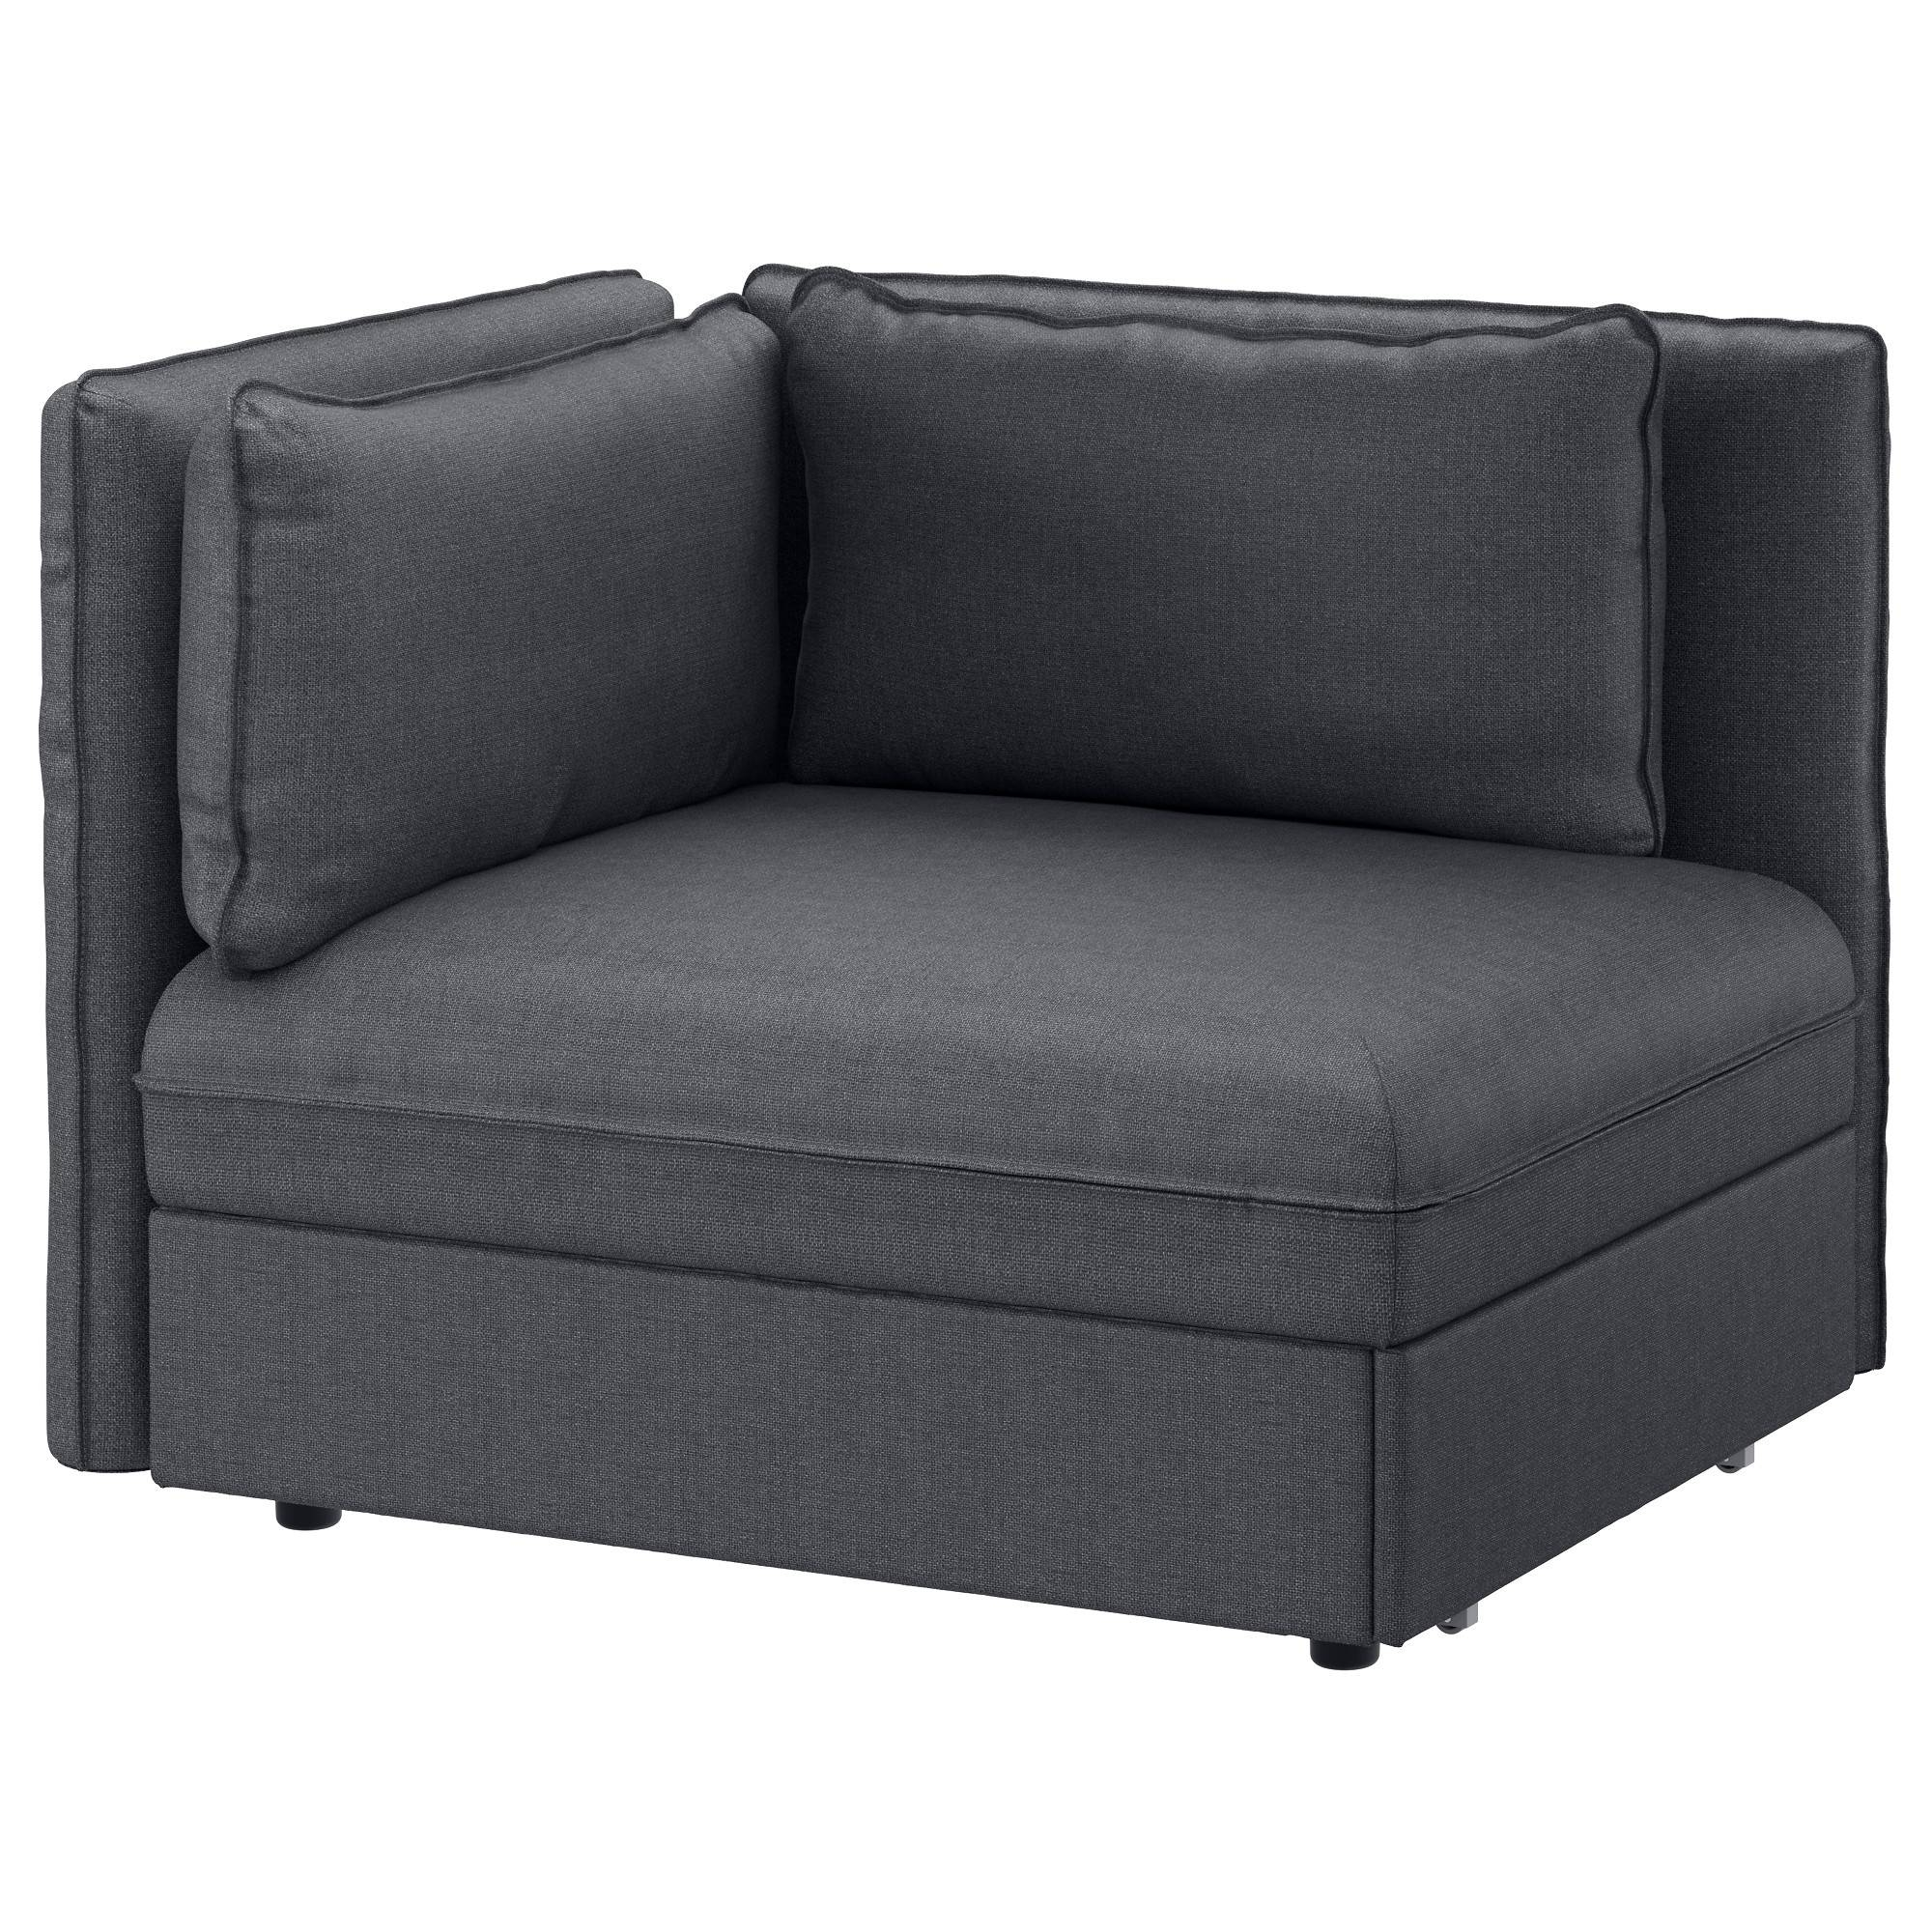 Sofa Beds & Futons - Ikea with Sleeper Sofa Sectional Ikea (Image 24 of 25)